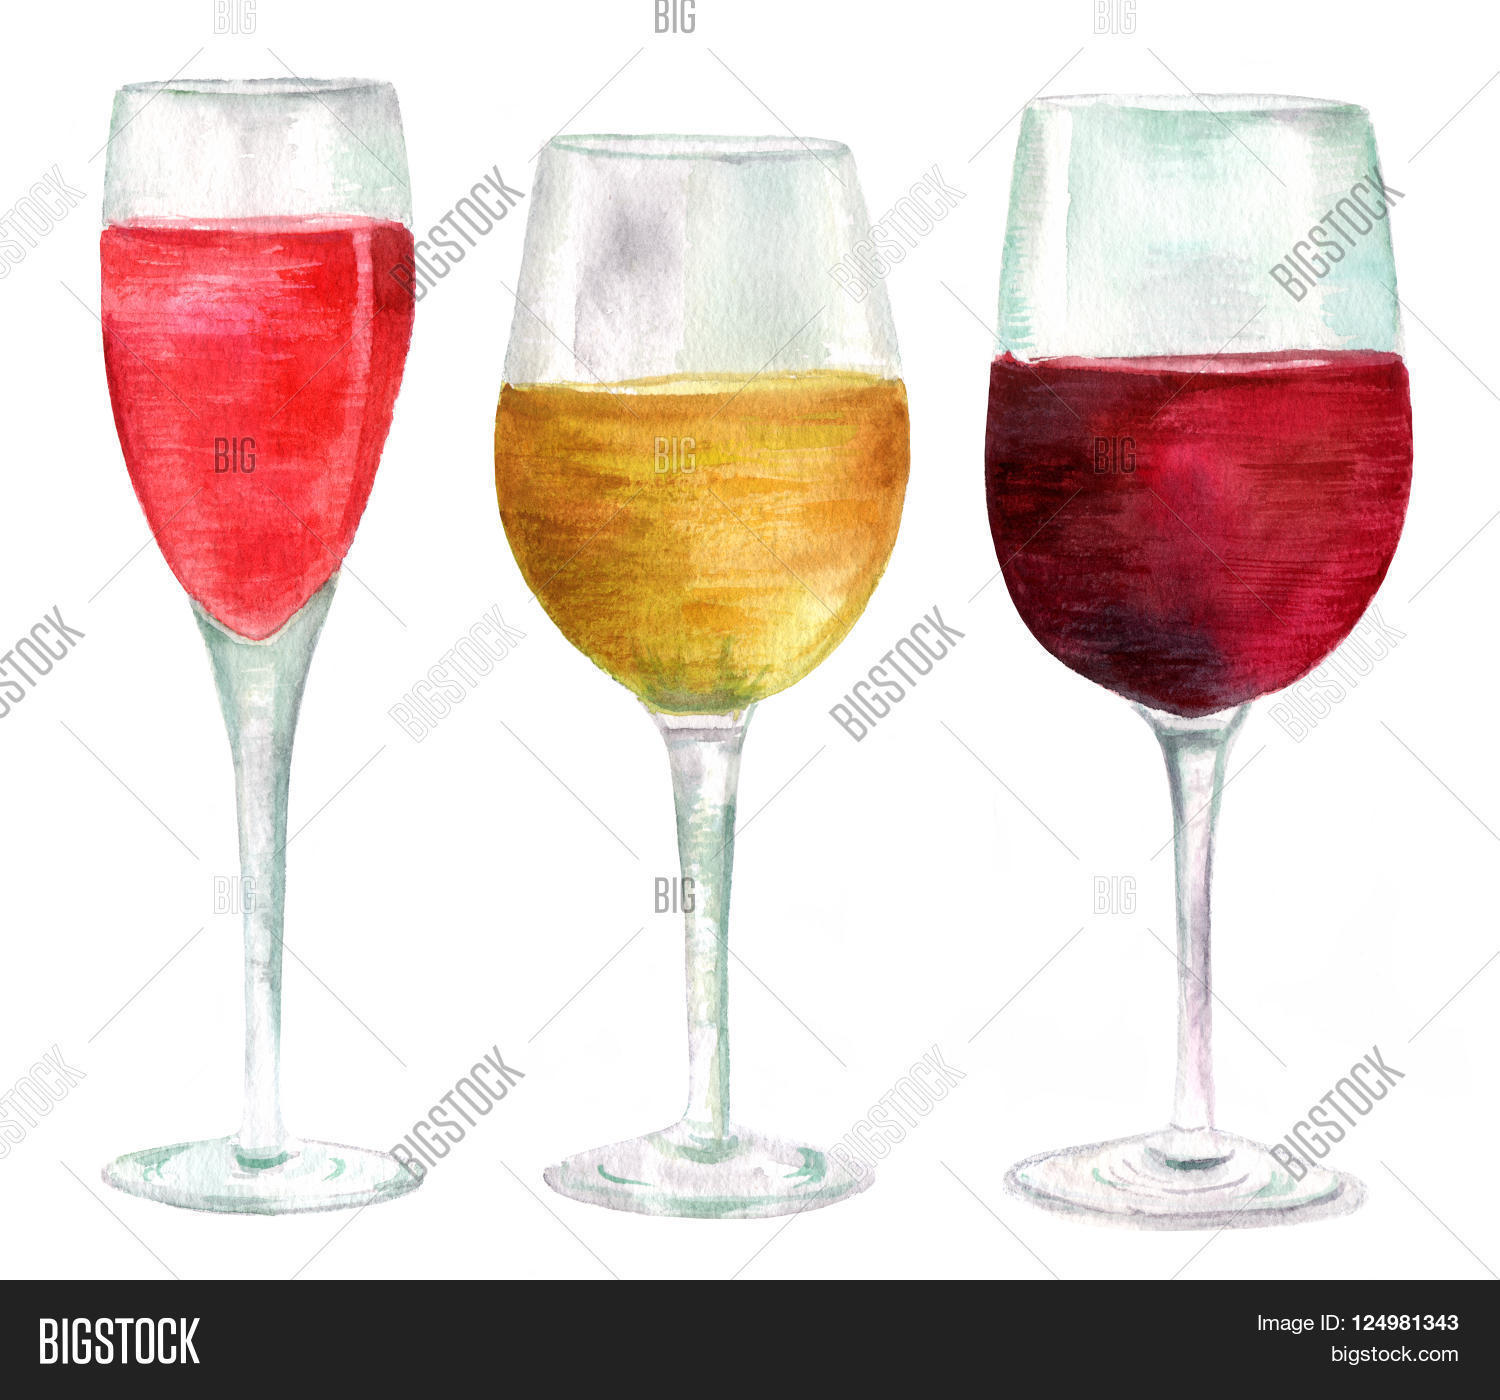 Big Red Wine Glasses Three Watercolor Wine Image And Photo Free Trial Bigstock